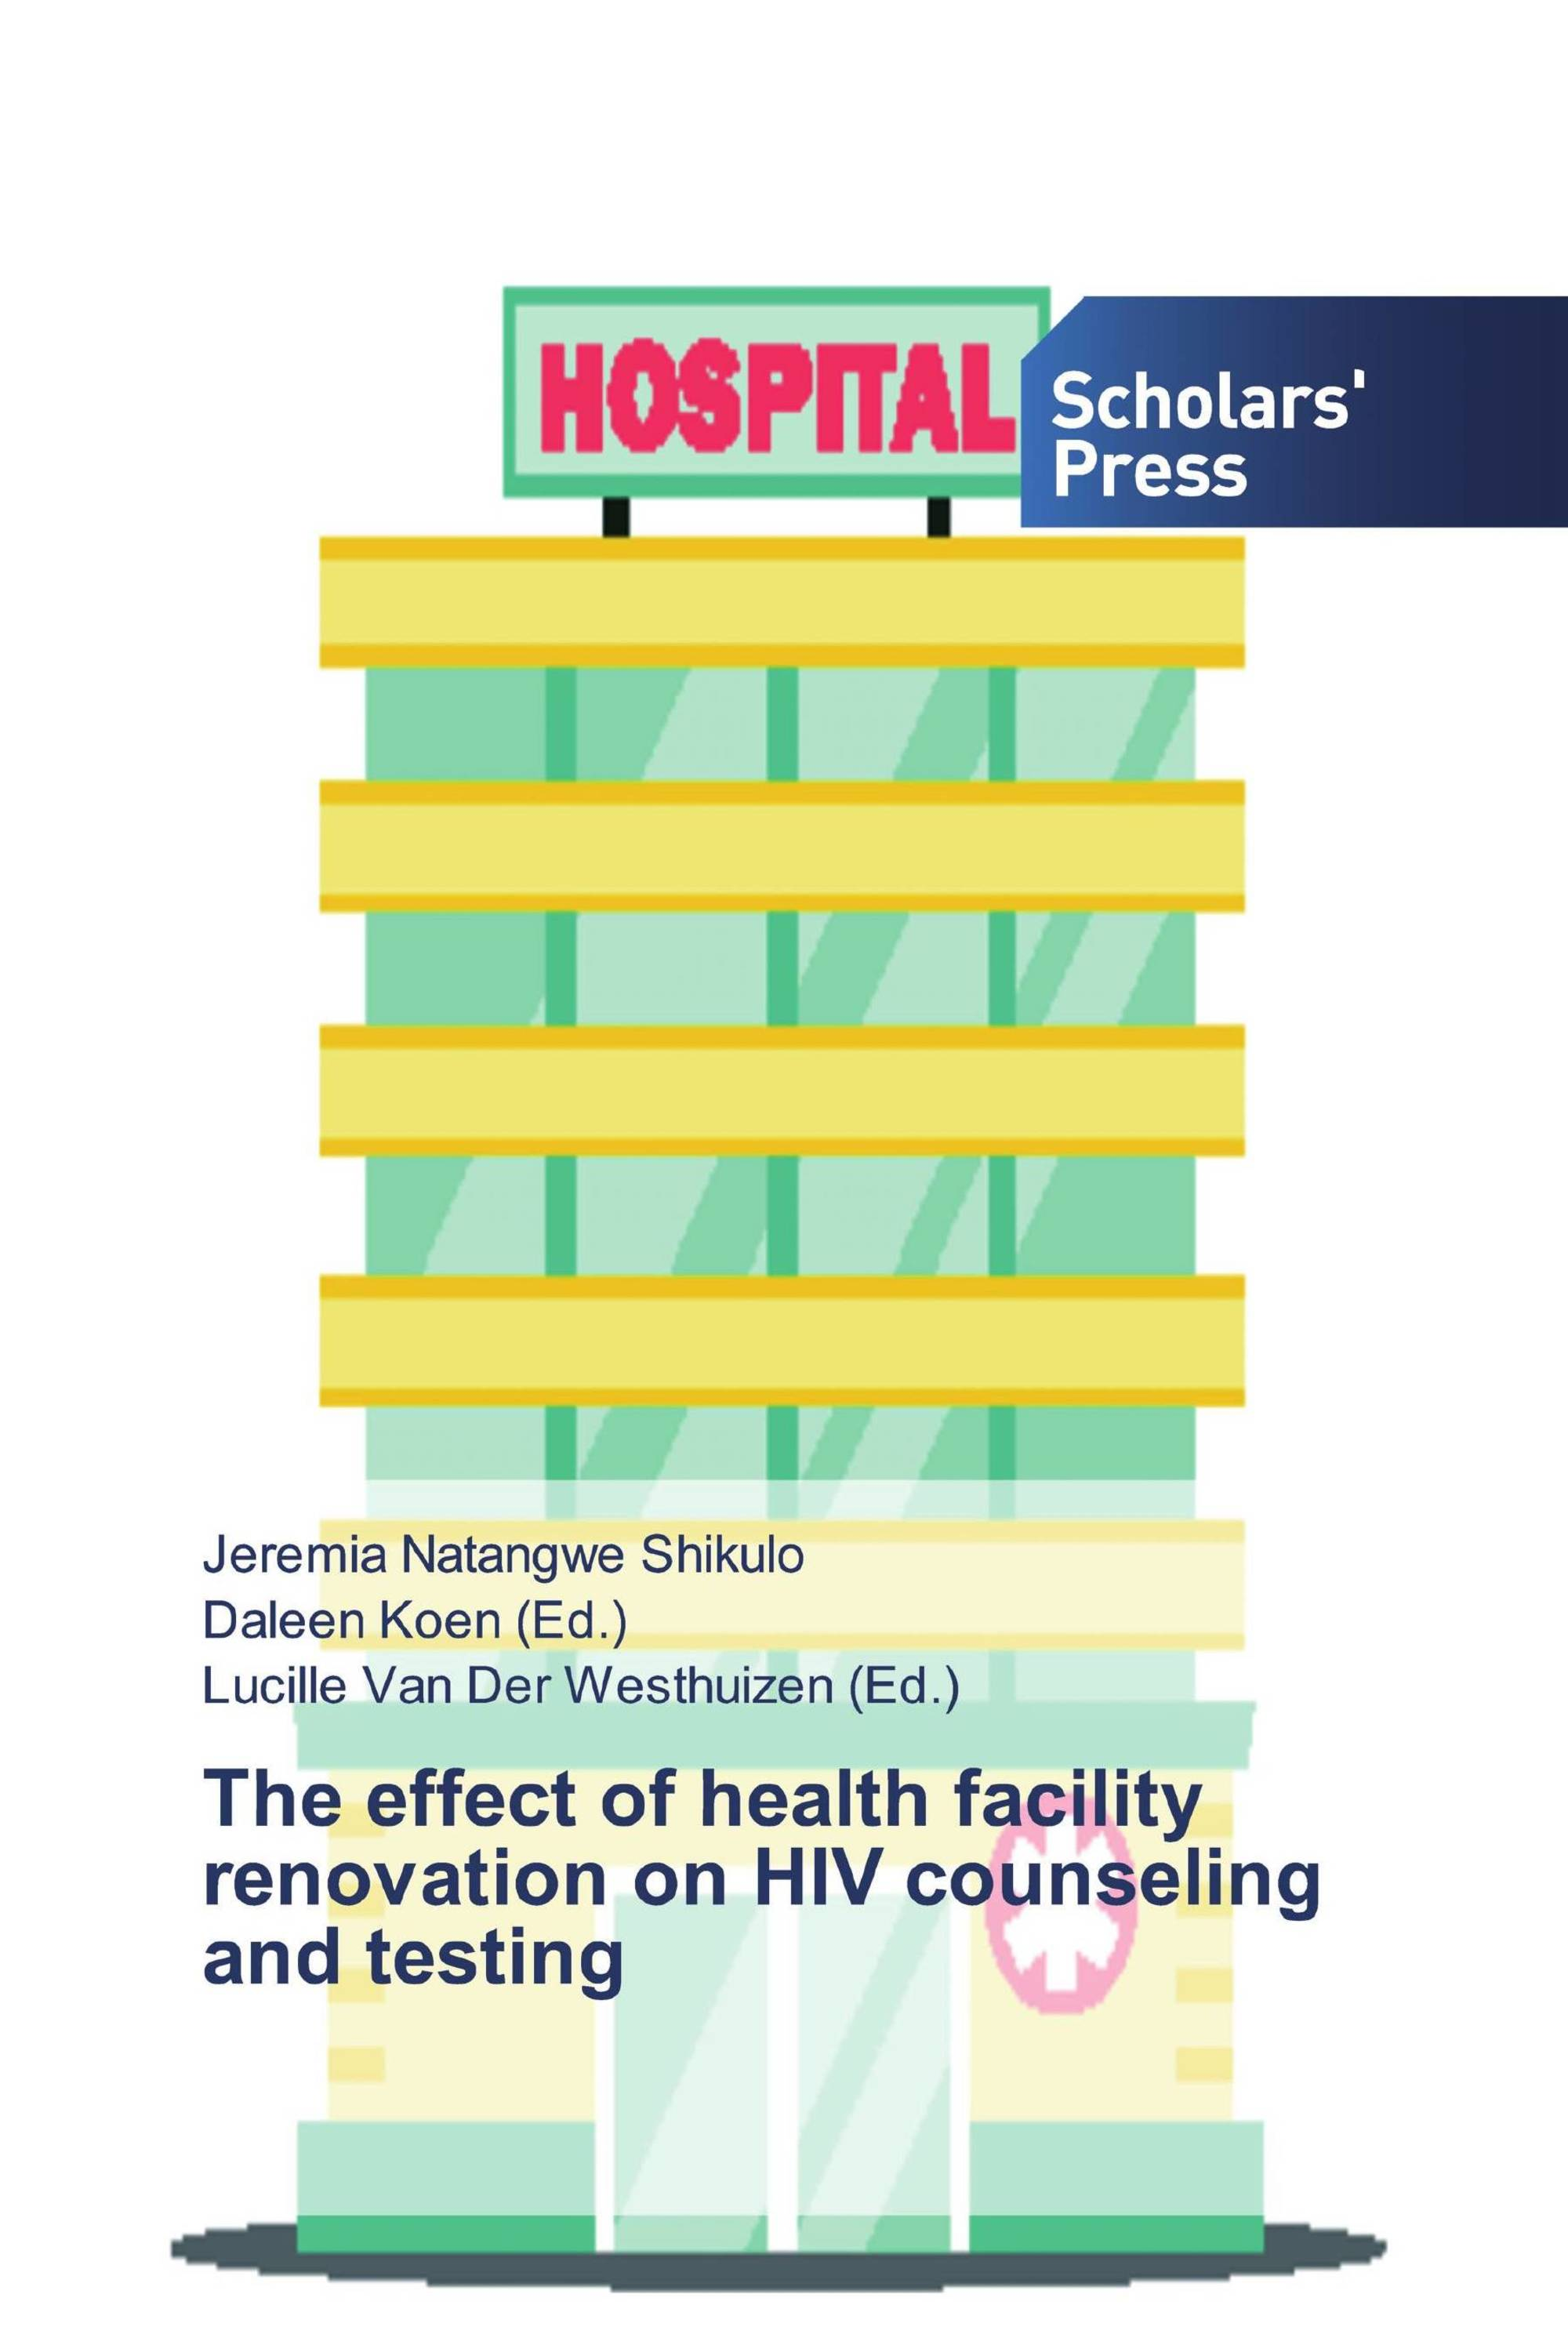 The effect of health facility renovation on HIV counseling and testing